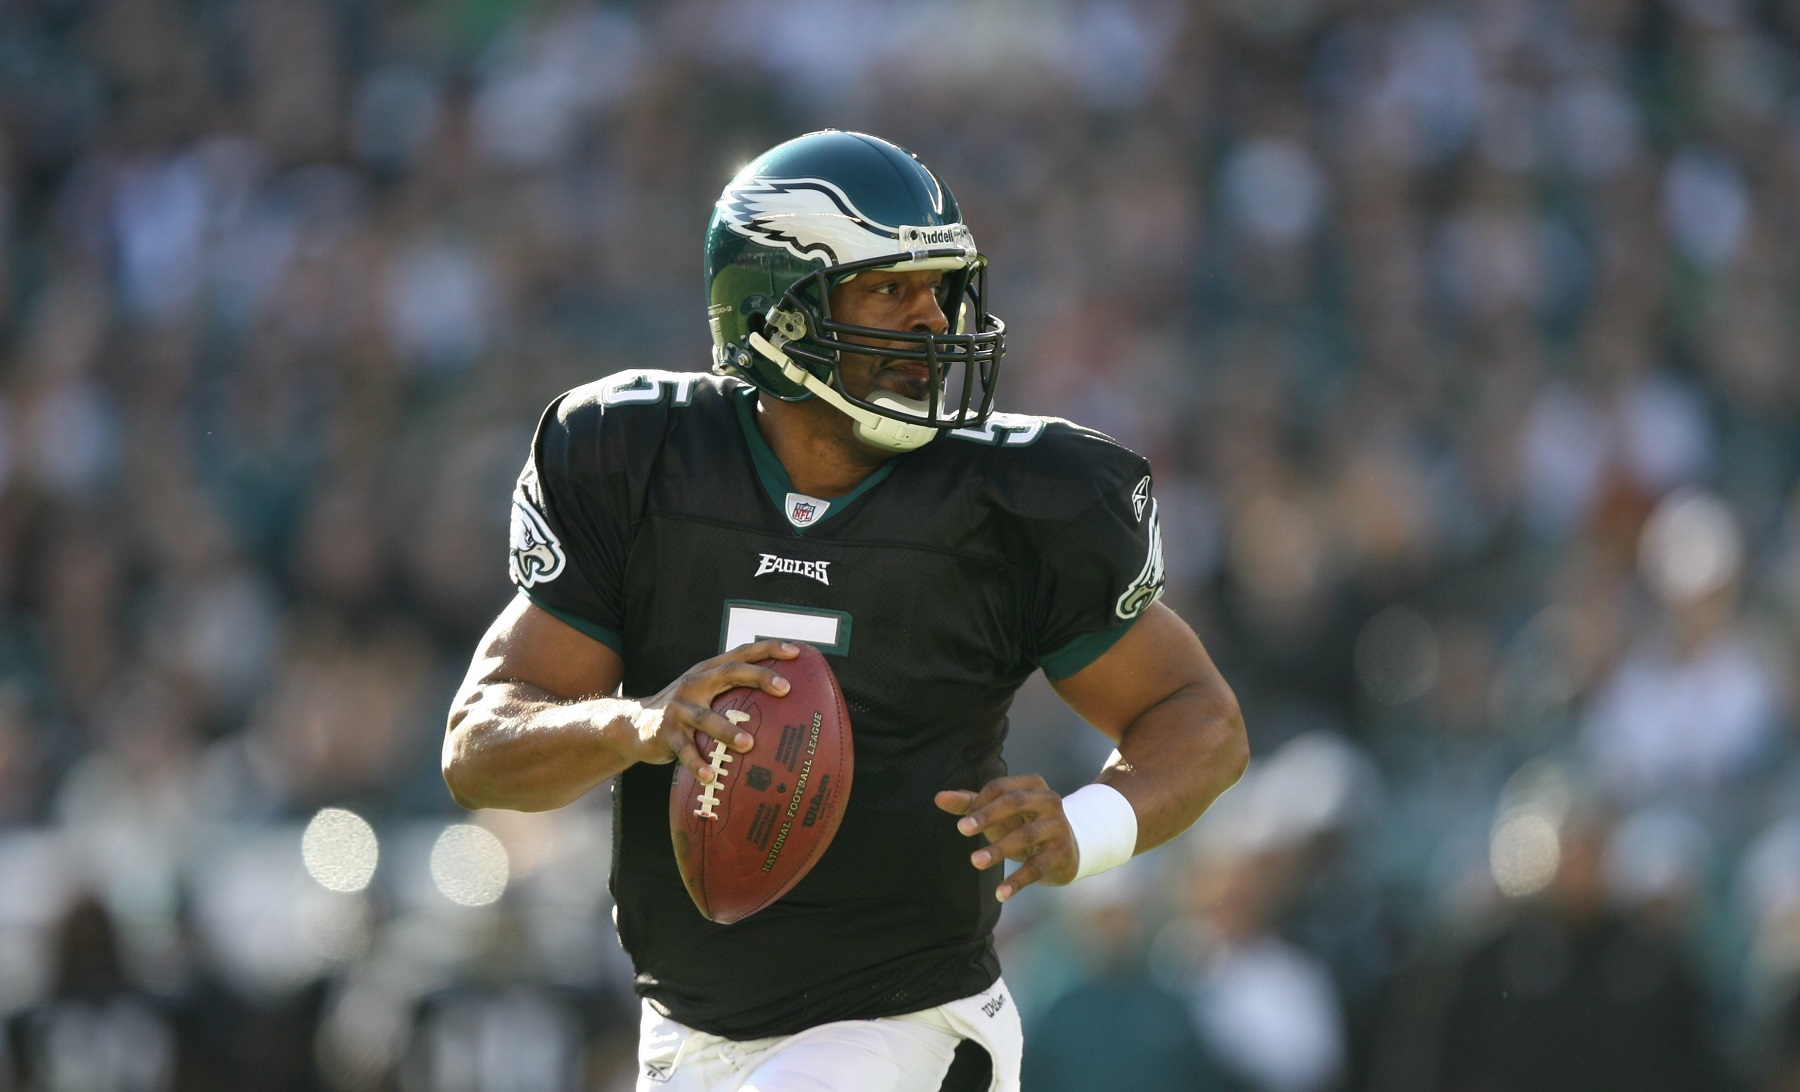 What Did Rush Limbaugh Say About Donovan McNabb That Cost Him His Job?